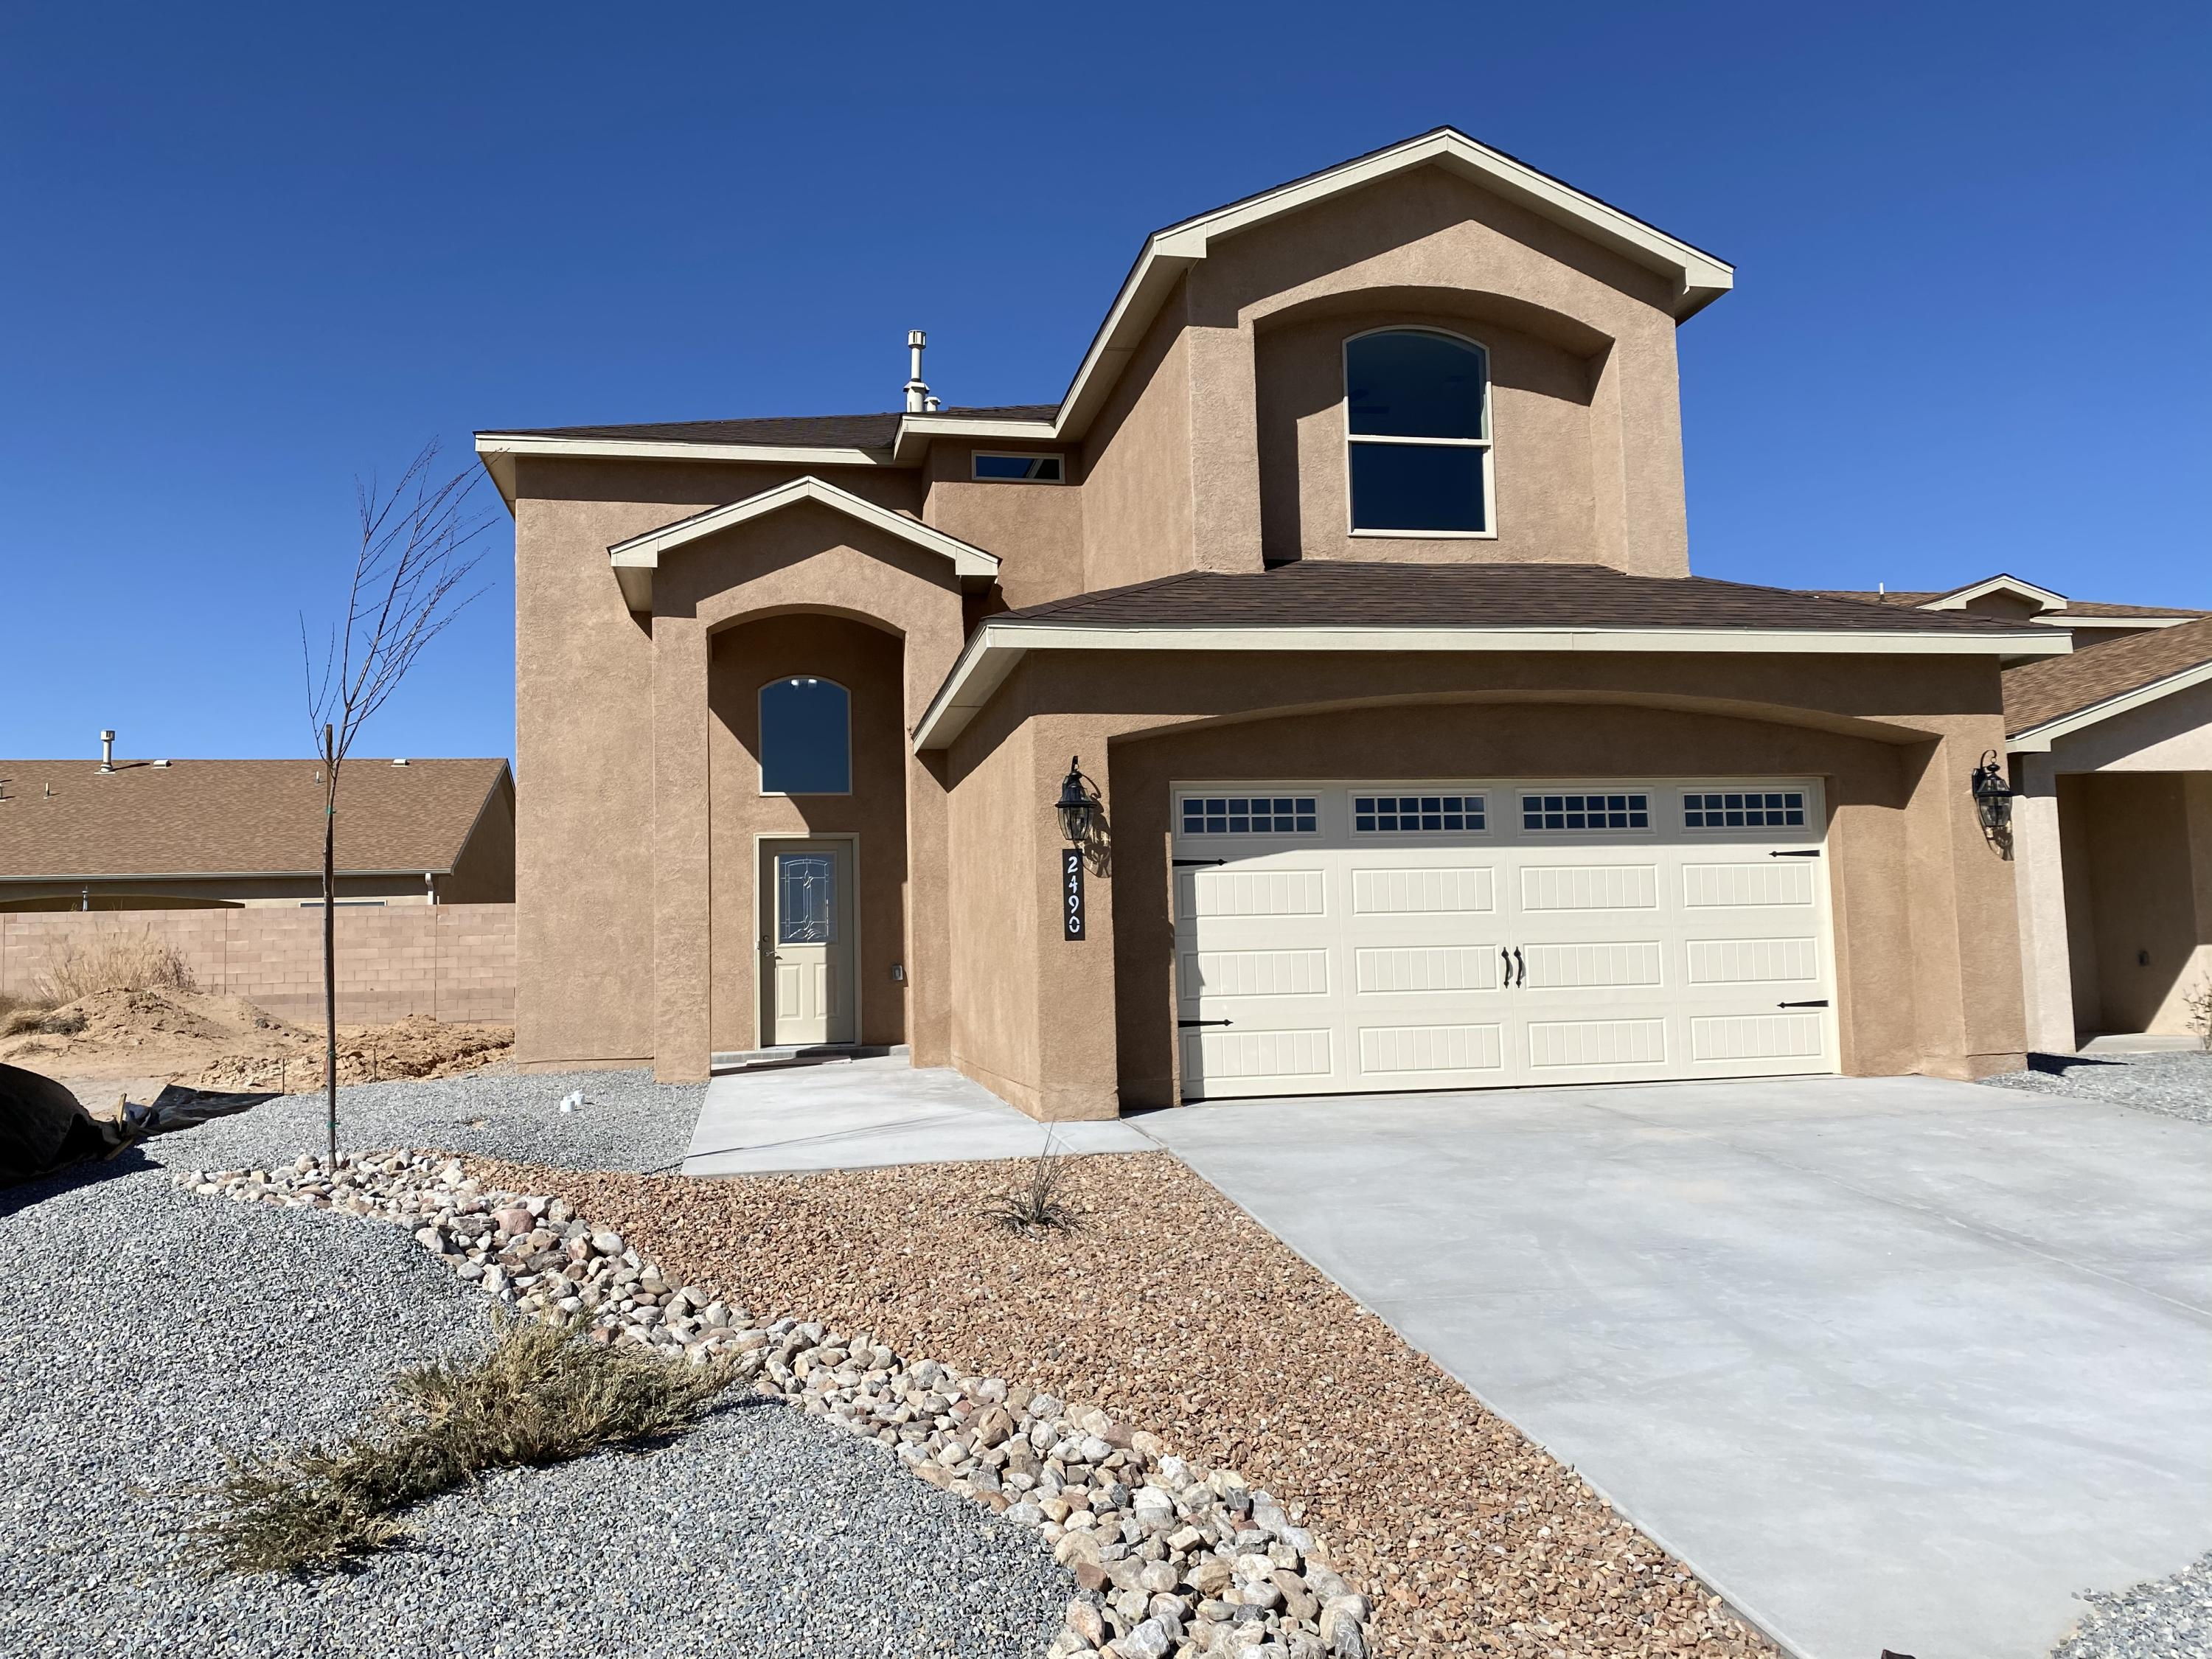 Welcome to this new home (Mojave floorplan) which features a open floor plan with beautiful ceramic tile, the elegant fireplace is a great focal point. Kitchen with custom cabinets and granite counters, and designed back splash. Bathrooms have designed tile work, master bath features double sinks, tub and shower, and many many more features to mention throughout. All of this in a Beautiful new community. This stunning home is built on a Guaranteed Post-Tension slab foundation. A must See!! We have many more to choose from also. Photos coming soon.